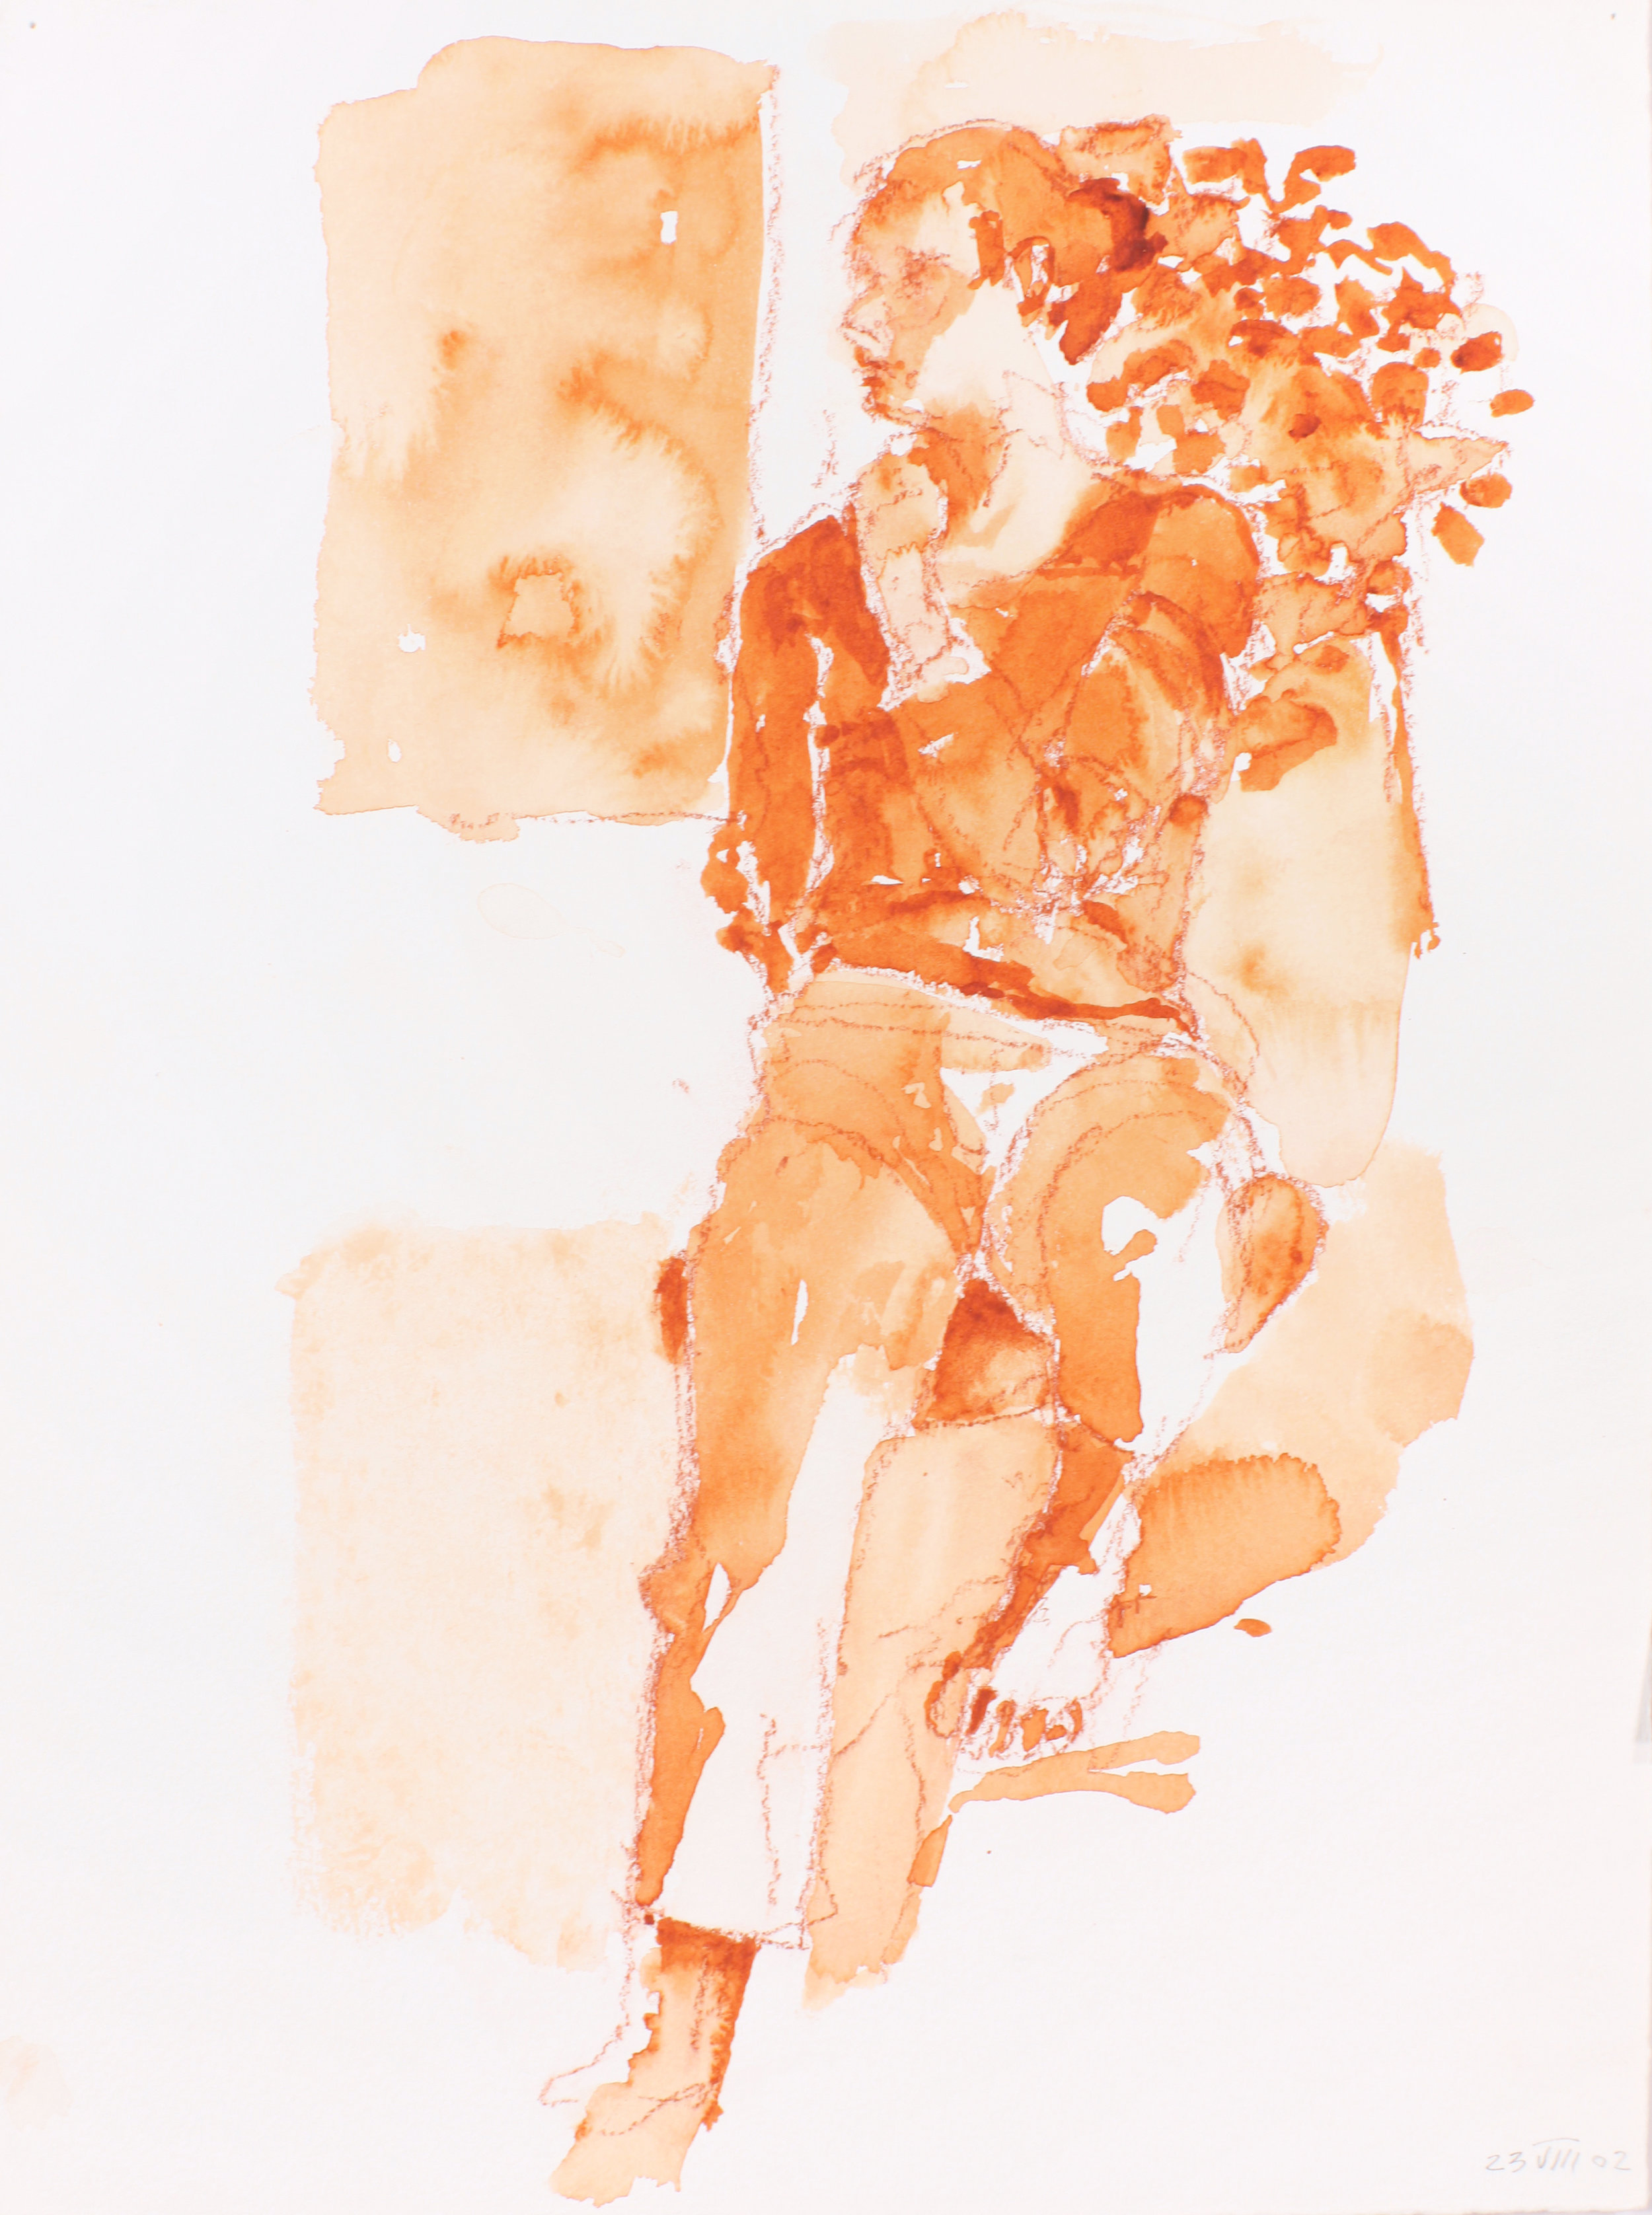 2002_Seated_Figure_Leaning_Against_Plant_watercolour_and_red_conté_on_paper_15x11in_WPF222.jpg